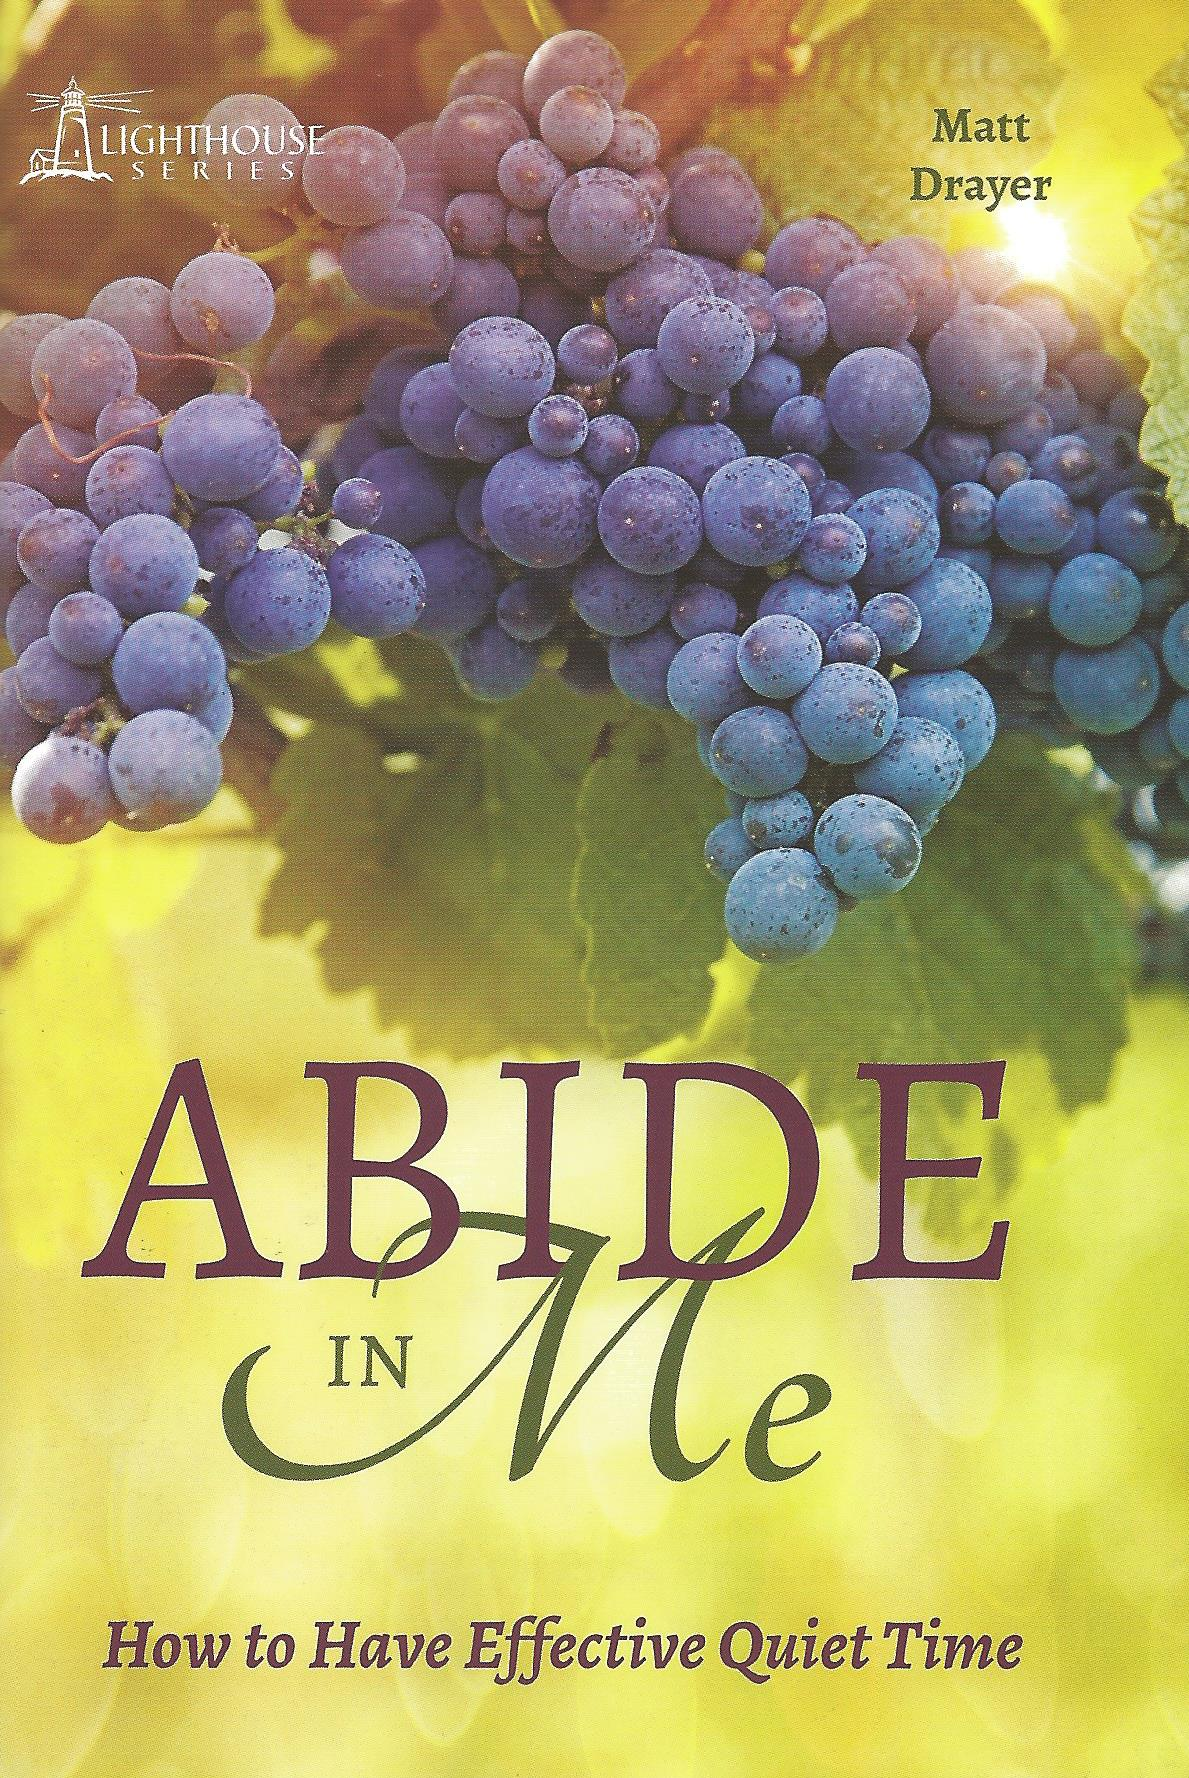 ABIDE IN ME Matt Drayer